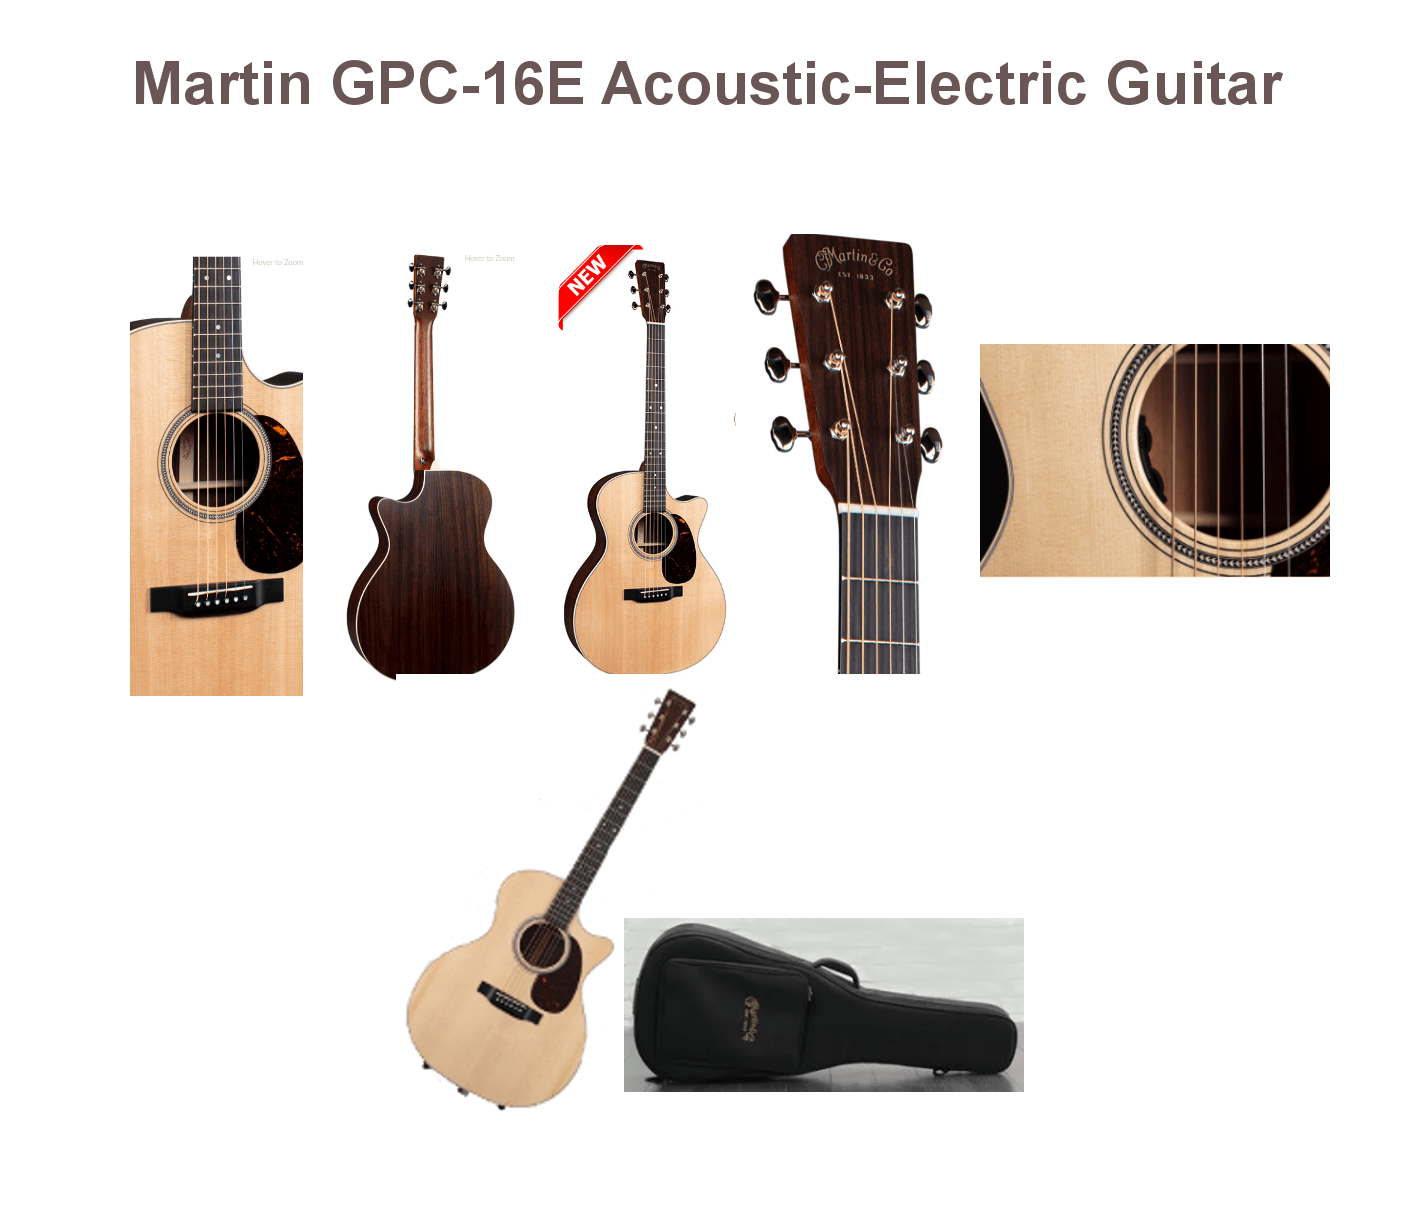 Martin GPC-16E Acoustic-Electric Guitar